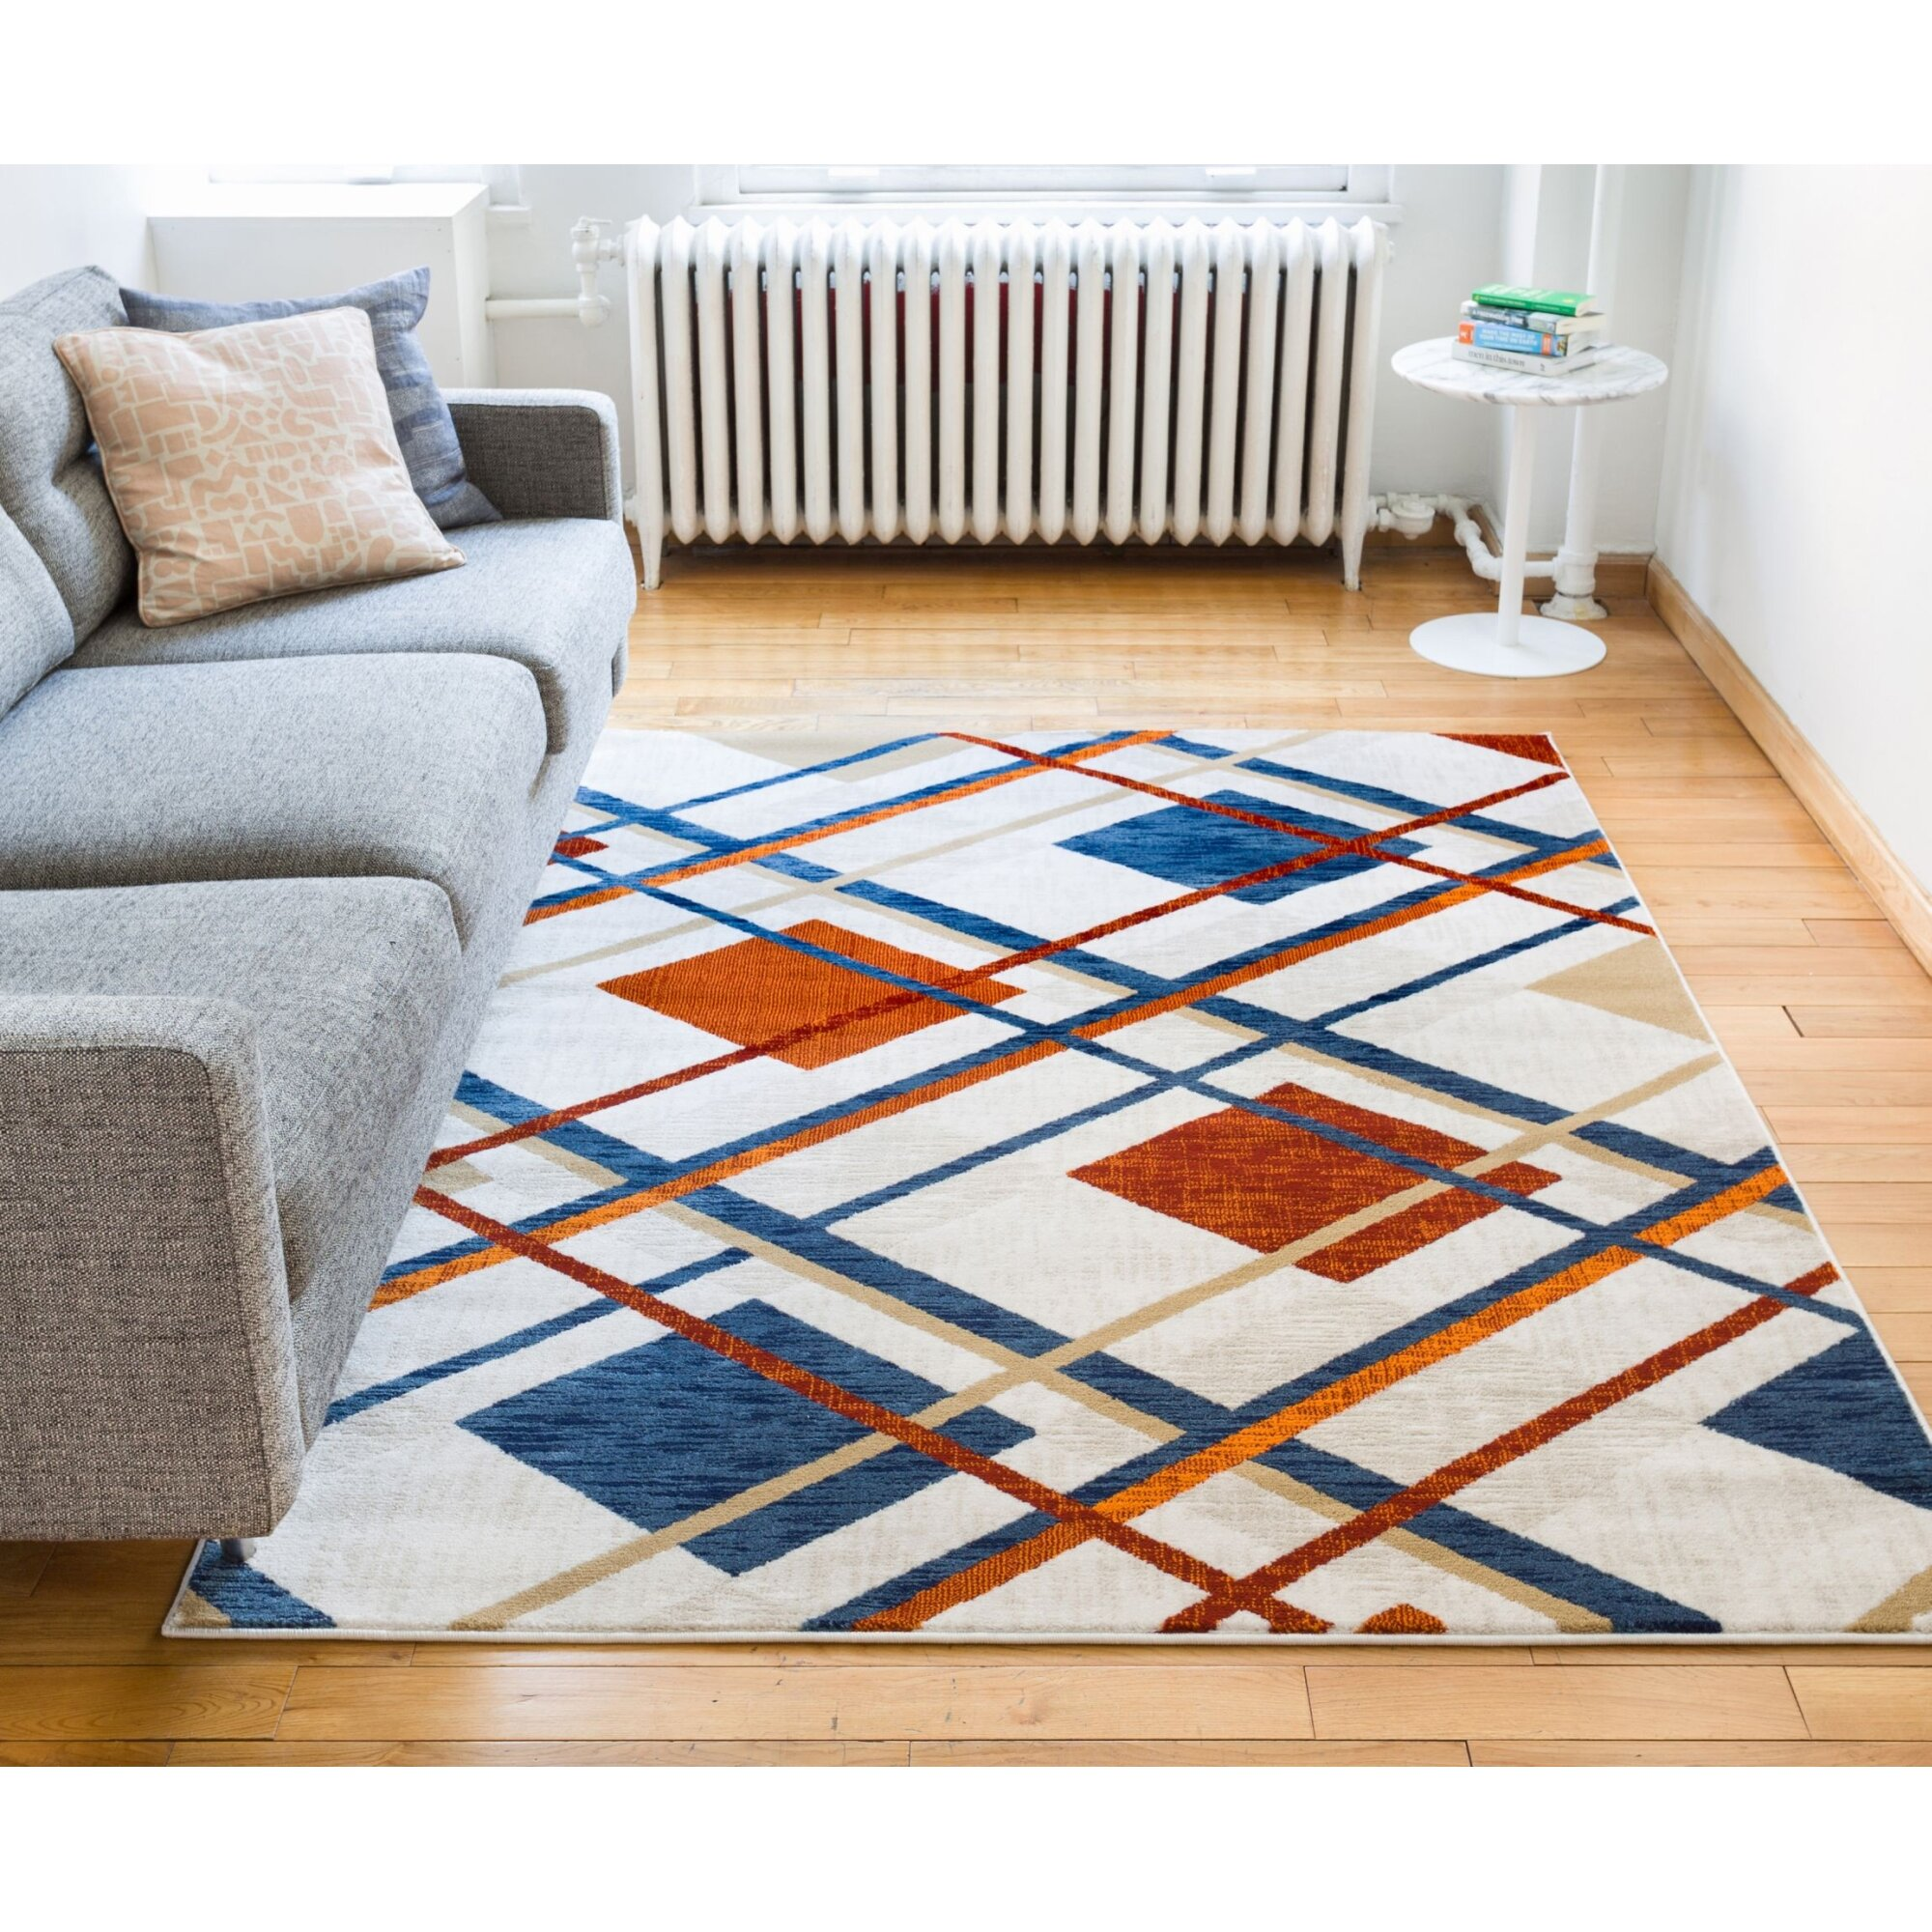 Plaid Rug: Well Woven Amba Williamsburg Tartan Beige Area Rug